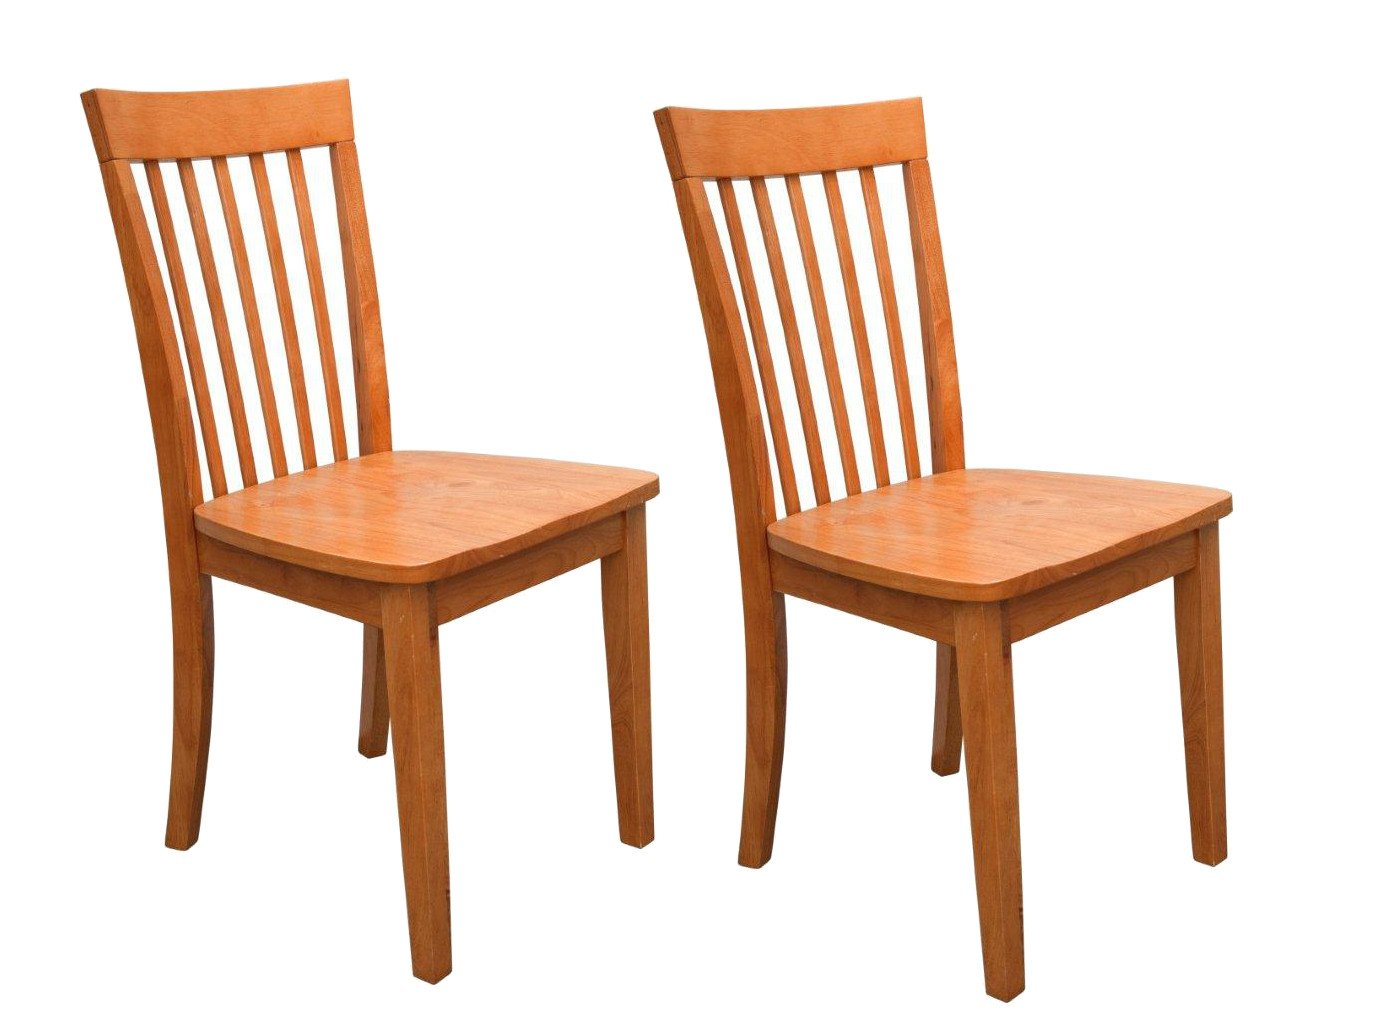 Set Of 2 Heavy Duty Solid Wood Dining Room   Kitchen Side Chairs (Maple).  By 2K Furniture Designs